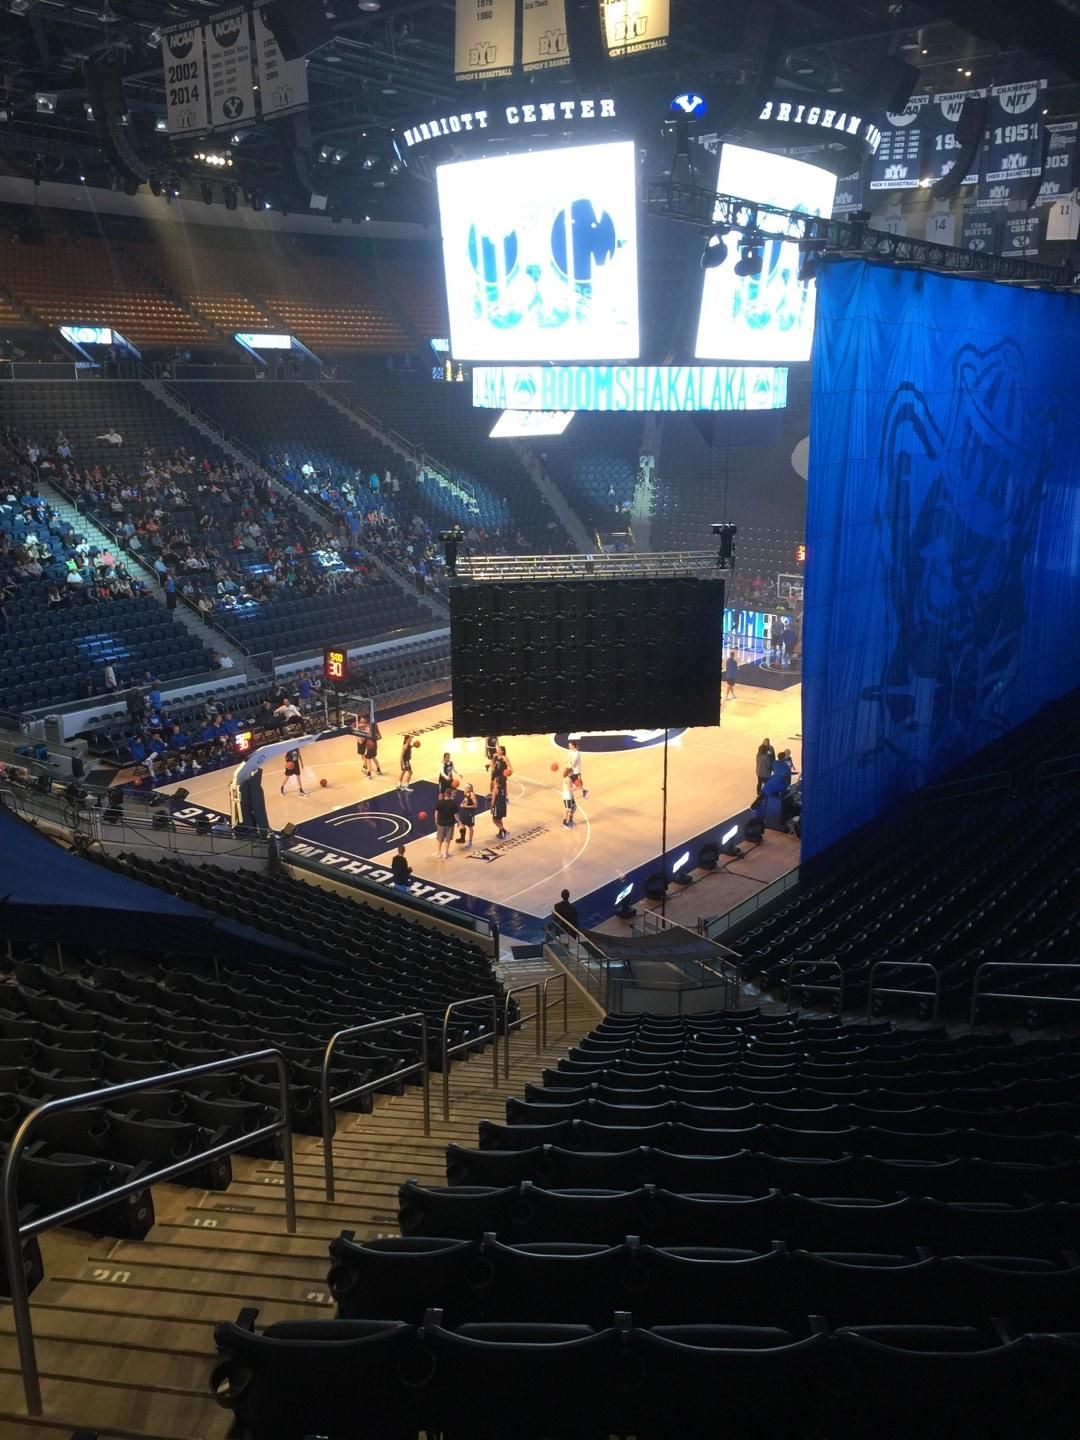 Marriott Center Section 1 Row 25 Seat 18